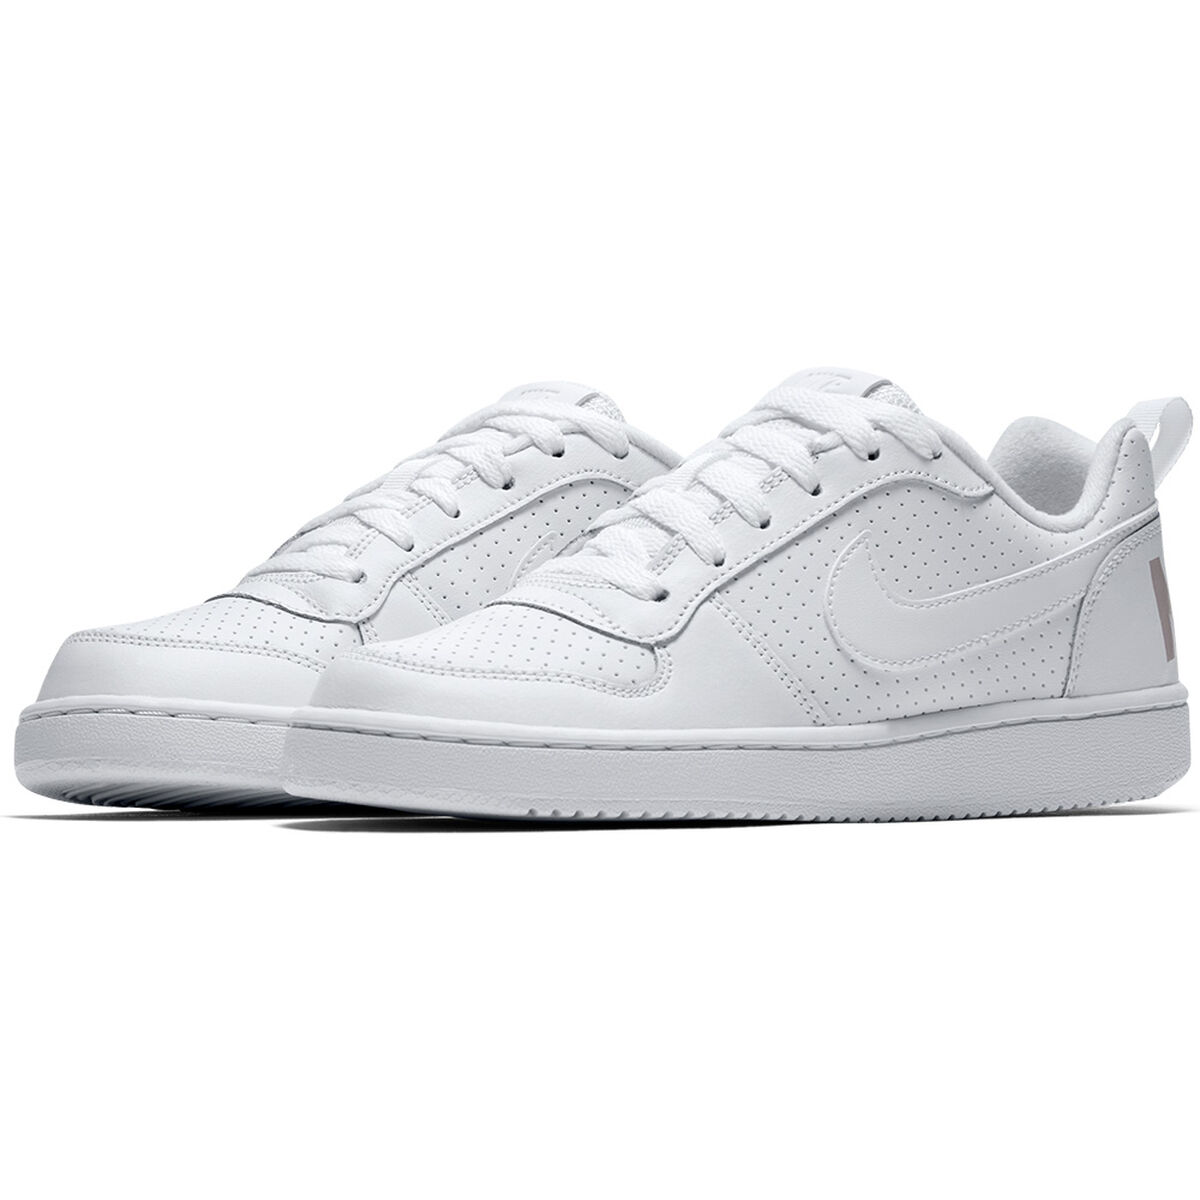 Zapatilla Nike Niño Court Borough Low (GS) 839985-100